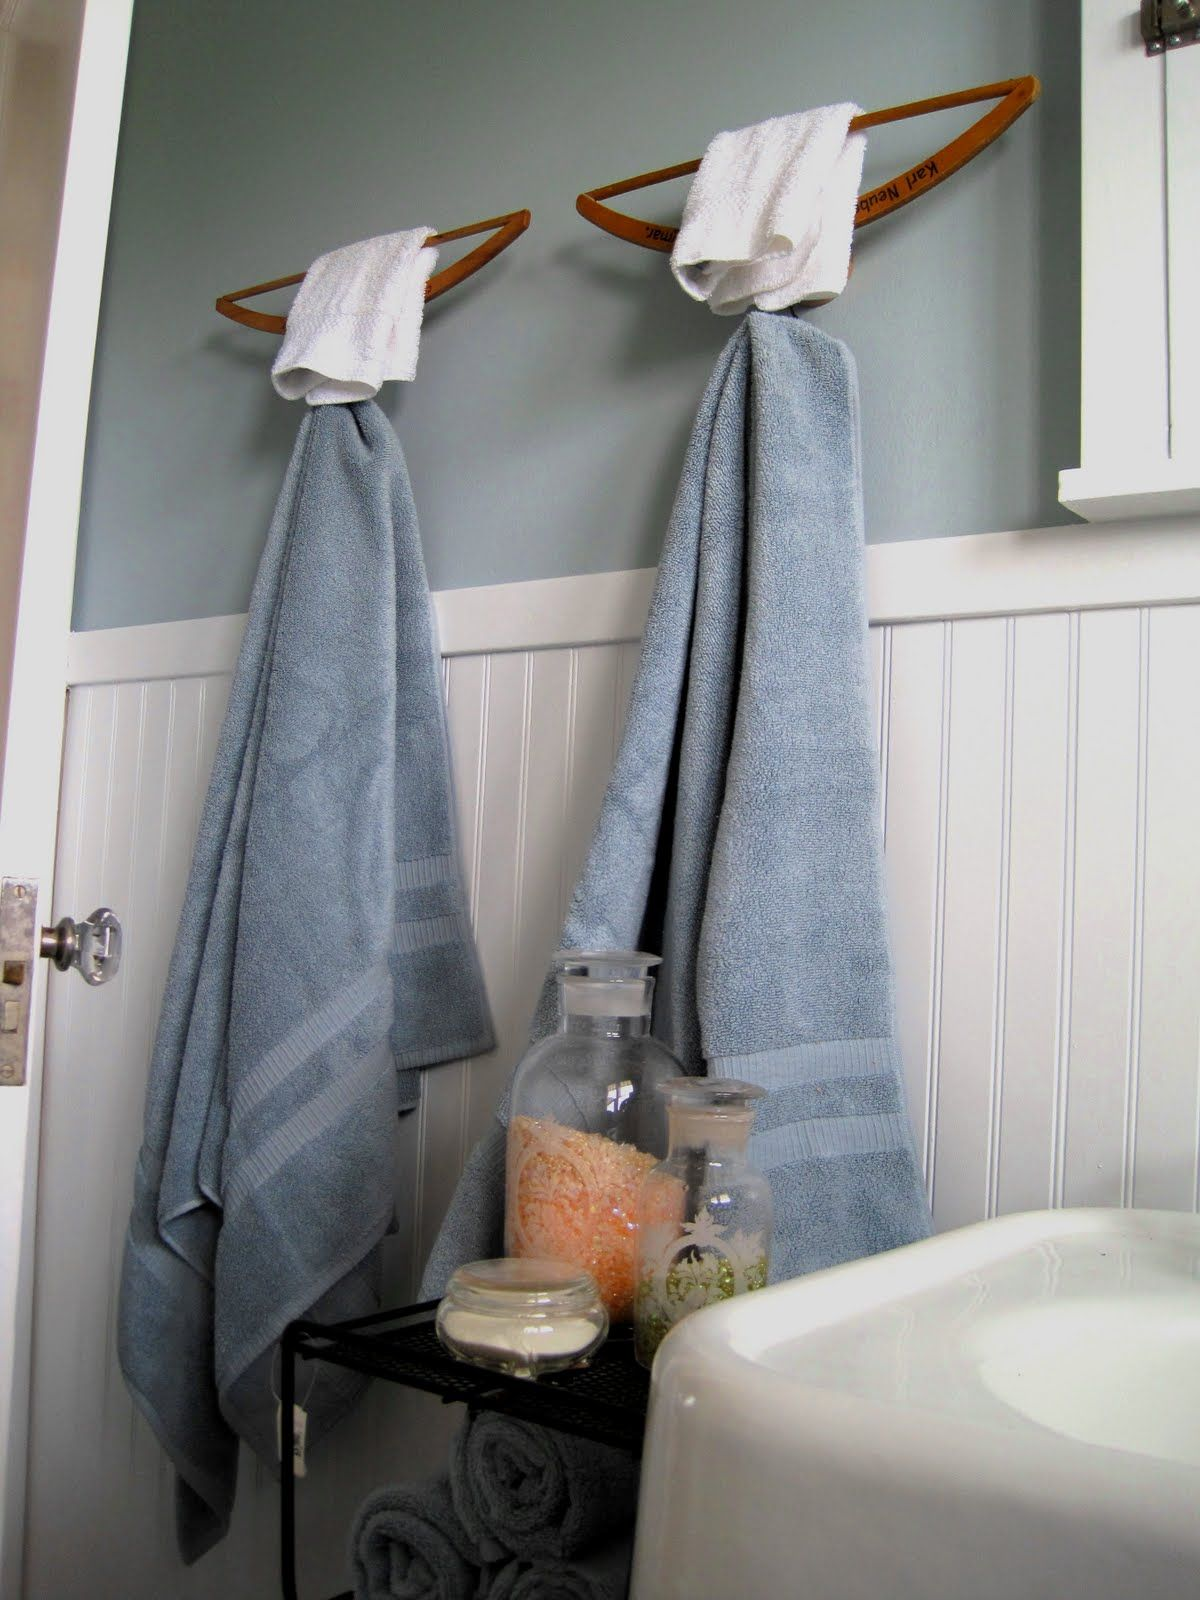 Hangers As Towel Bars Hooks By Junk Camp Dishfunctional - Hanging hand towels bathroom for small bathroom ideas